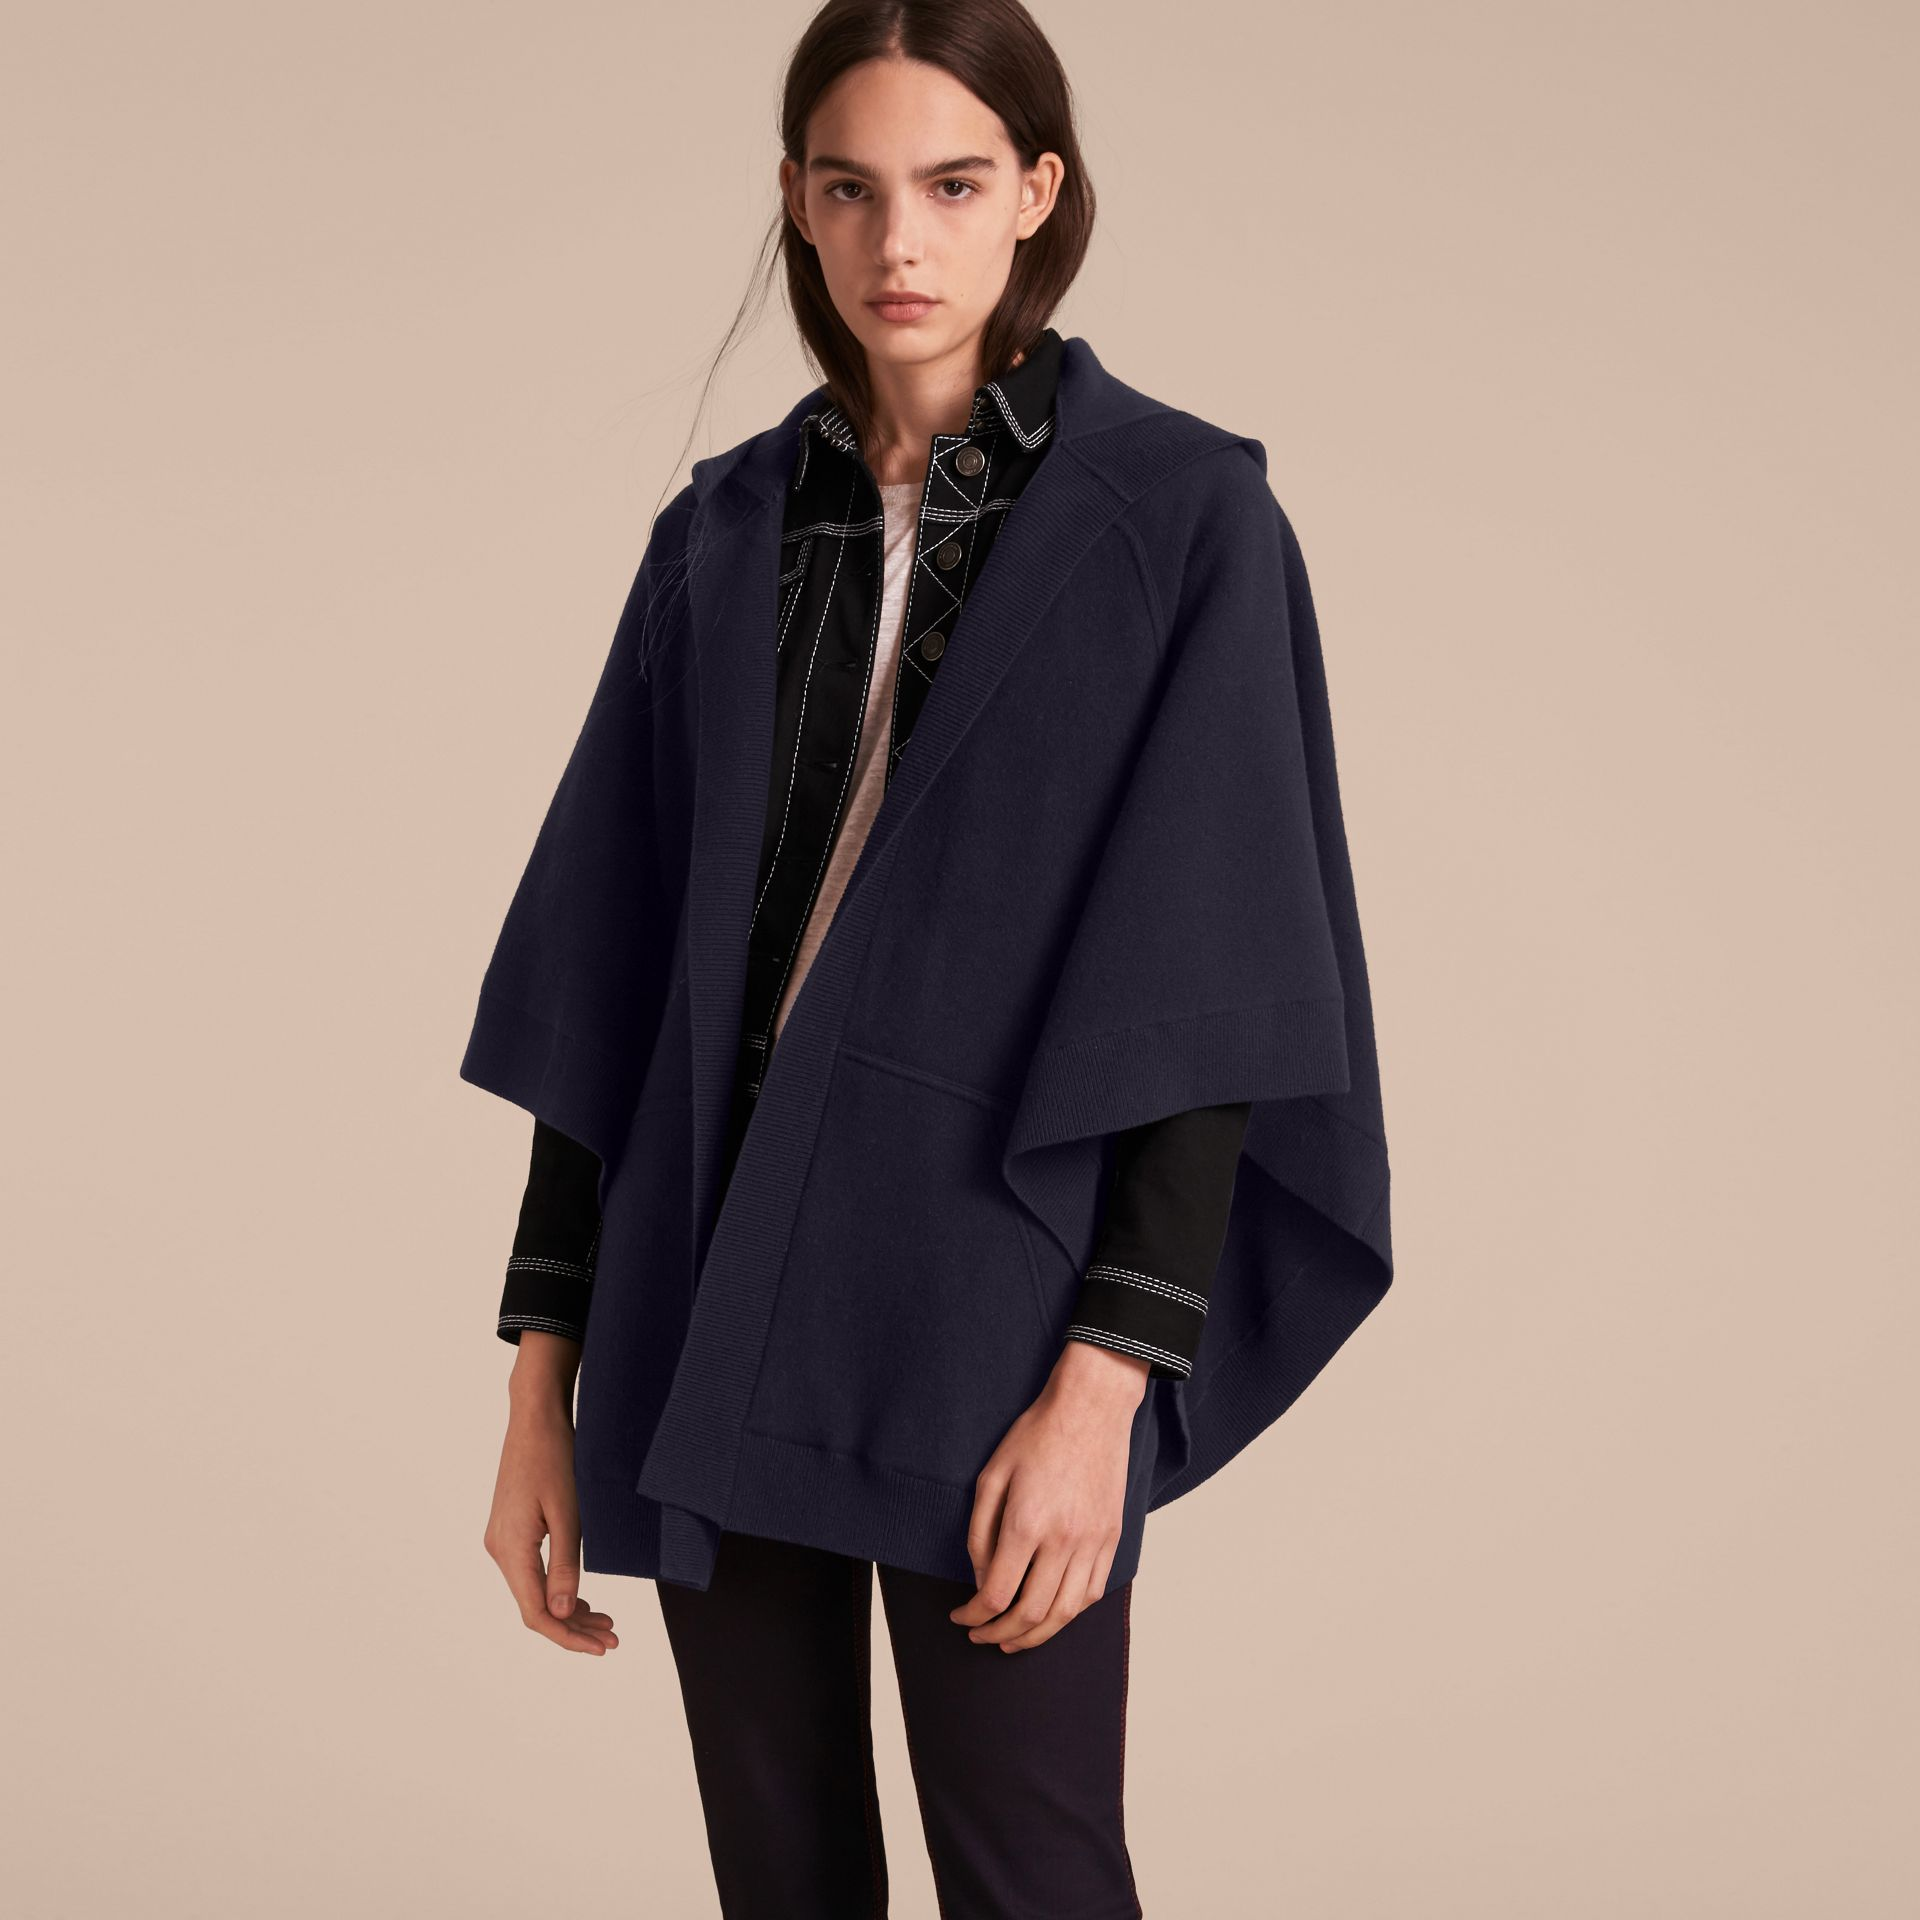 Wool Cashmere Blend Hooded Poncho in Navy/black - Women | Burberry United States - gallery image 5